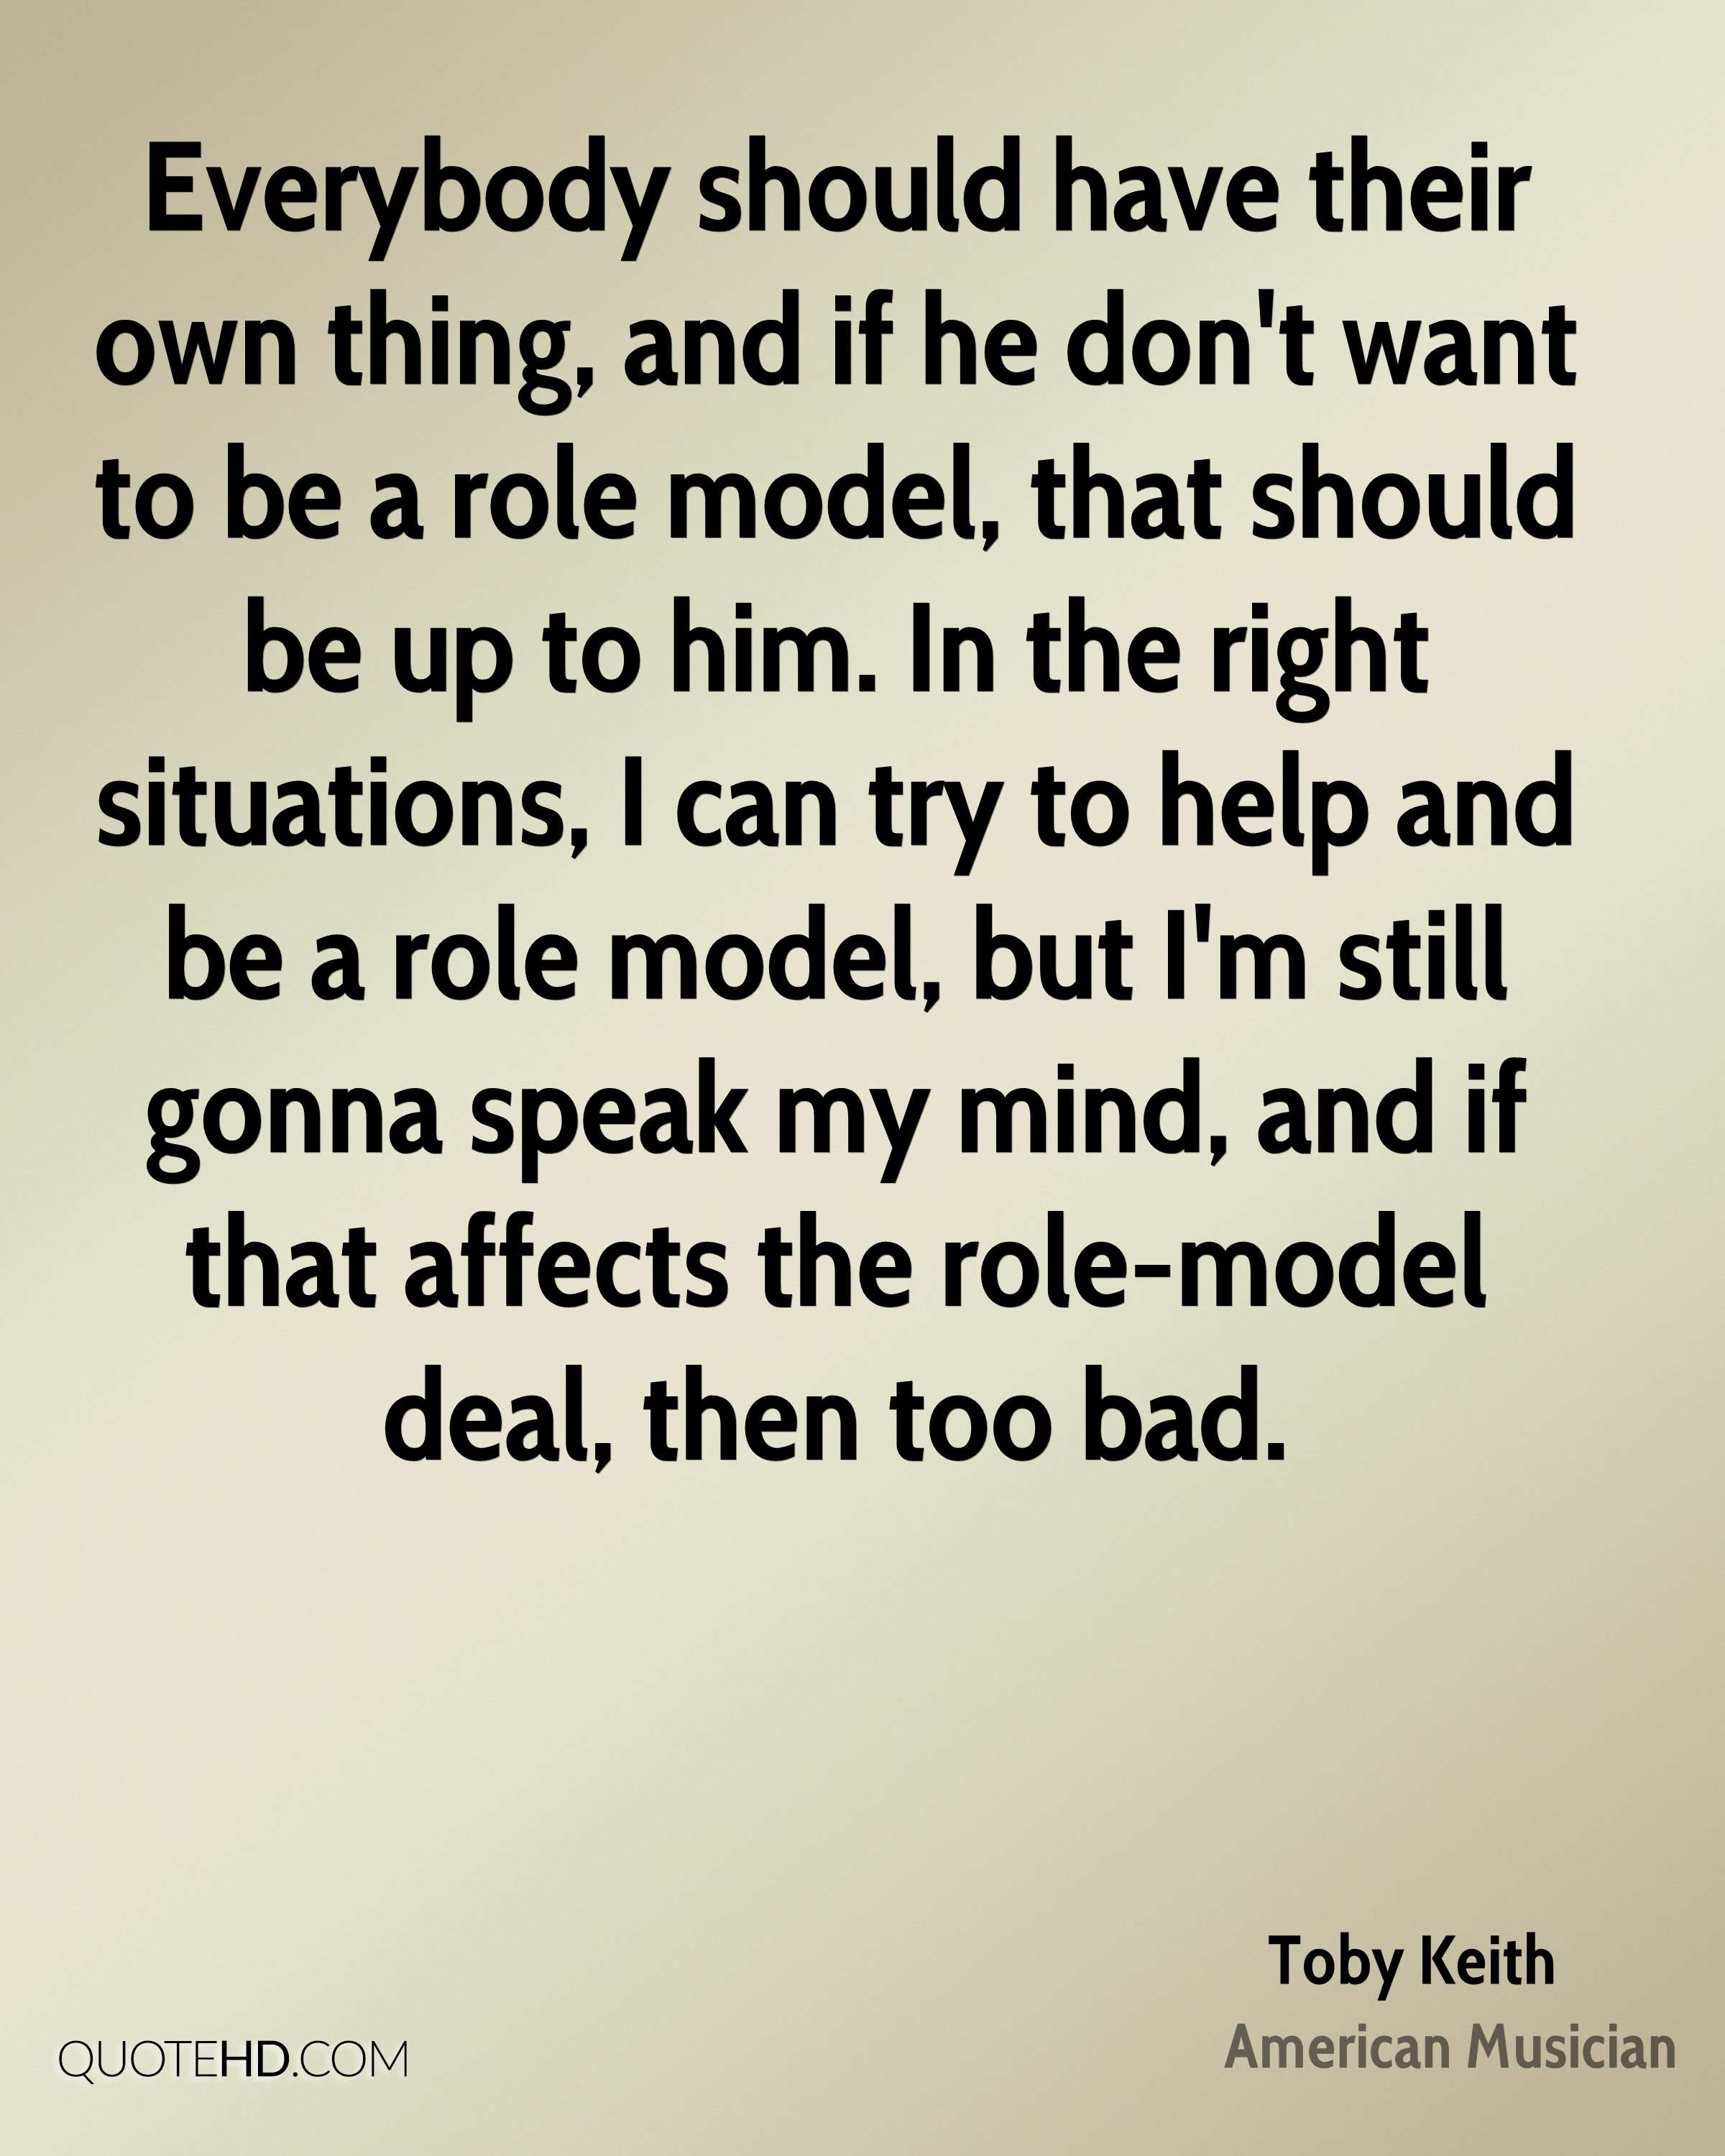 Everybody should have their own thing, and if he don't want to be a role model, that should be up to him. In the right situations, I can try to help and be a role model, but I'm still gonna speak my mind, and if that affects the role-model deal, then too bad.